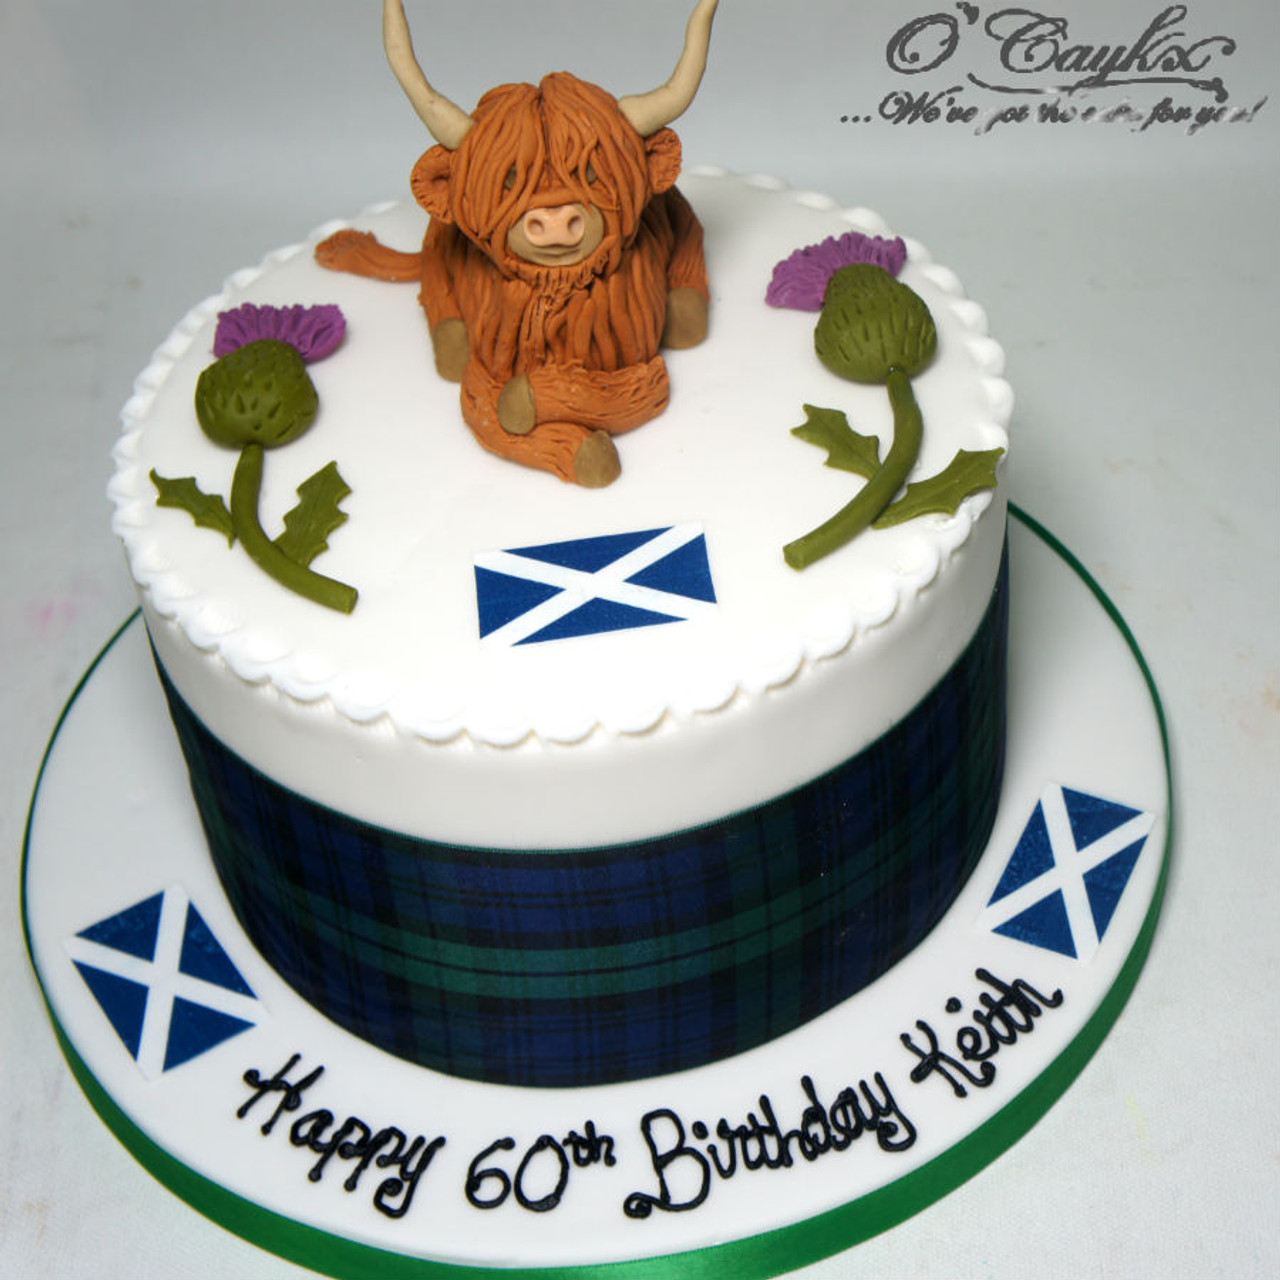 Marvelous Highland Cow And Thistle Cake Aberdeen Birthday Cards Printable Riciscafe Filternl